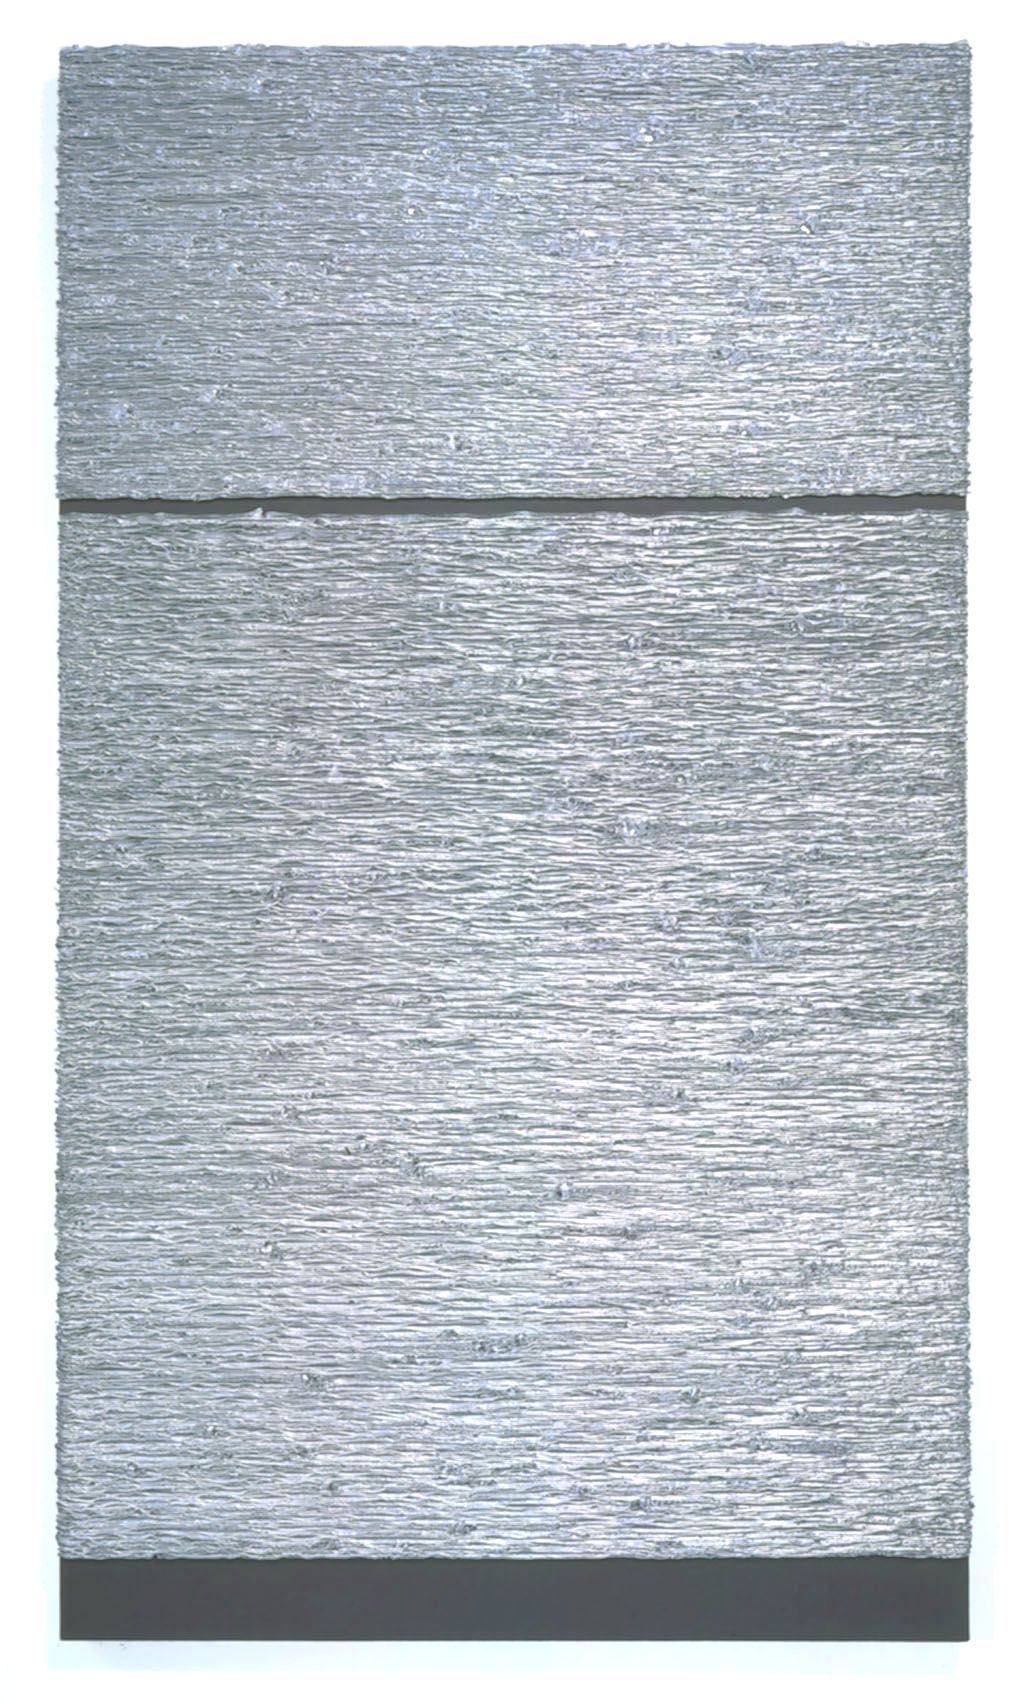 textured grey rectangle with split in upper half by donald moffett